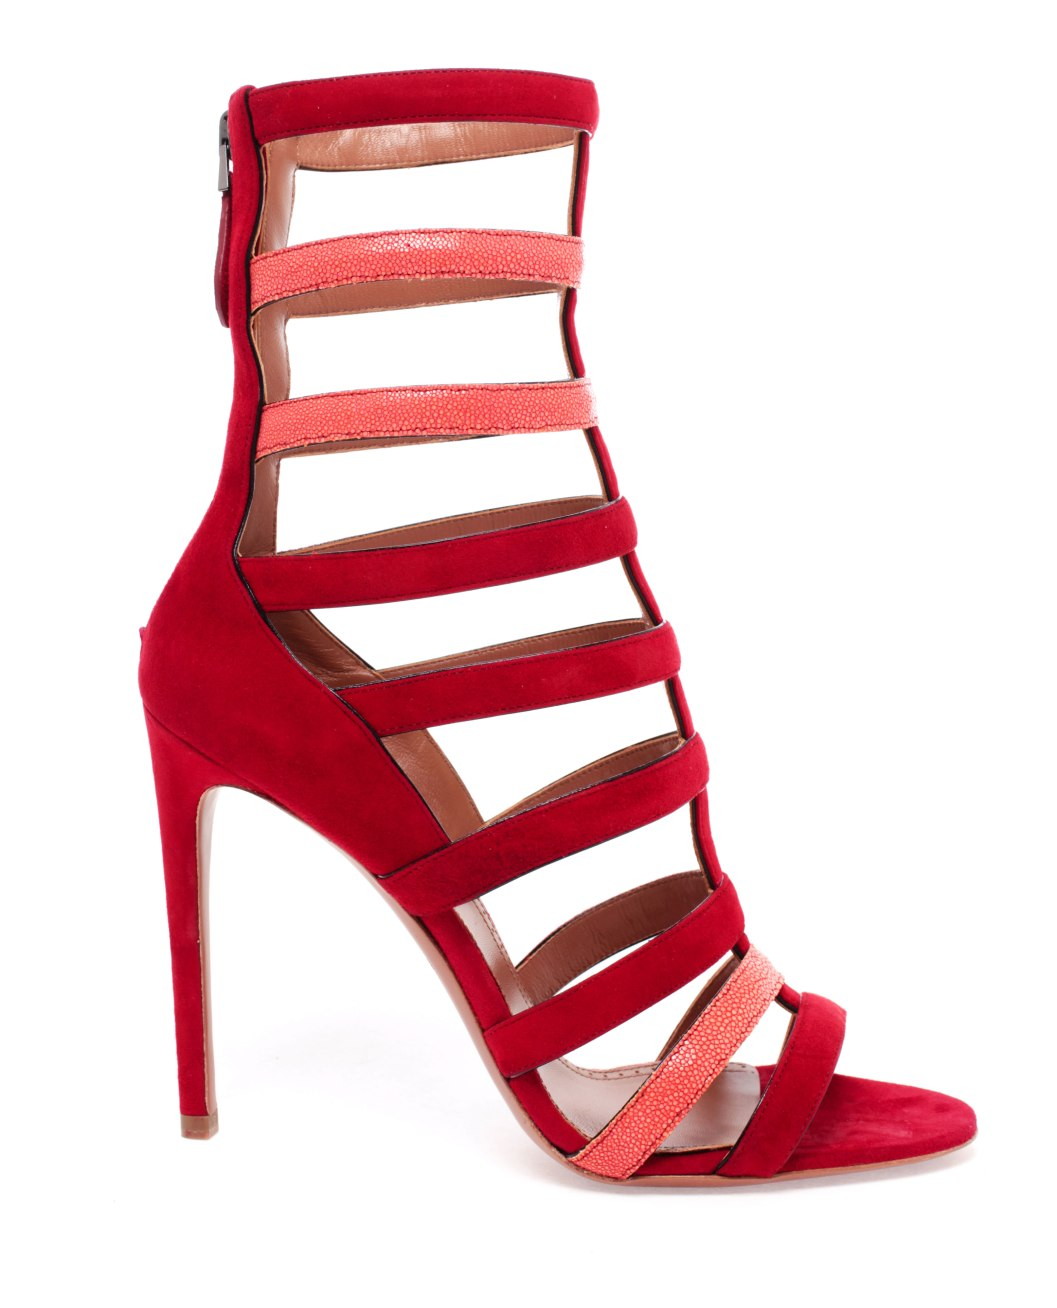 Alaia-Red-Strappy-Sandals_2